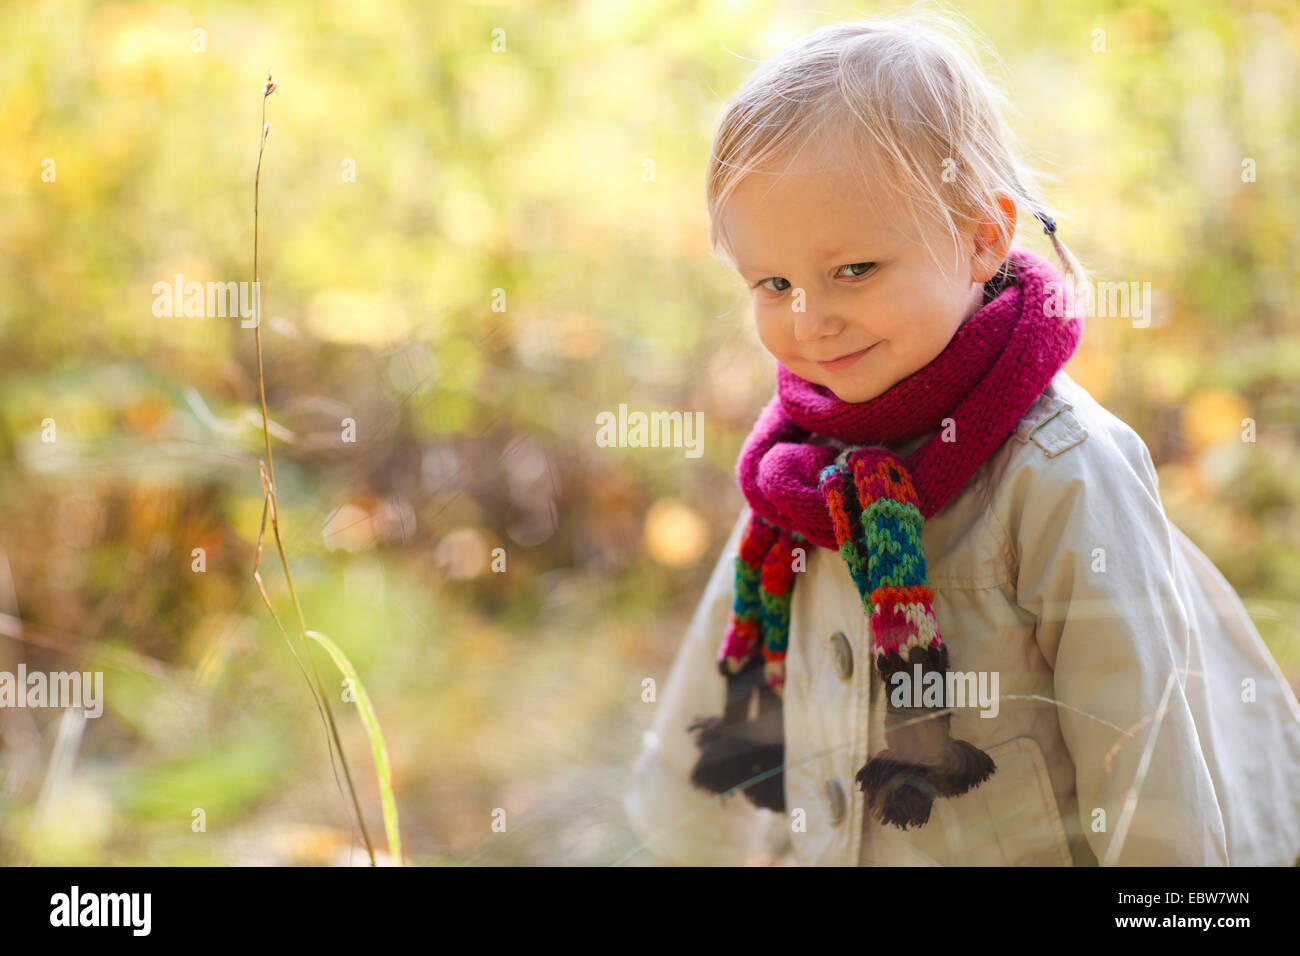 little girl with scarf - Stock Image